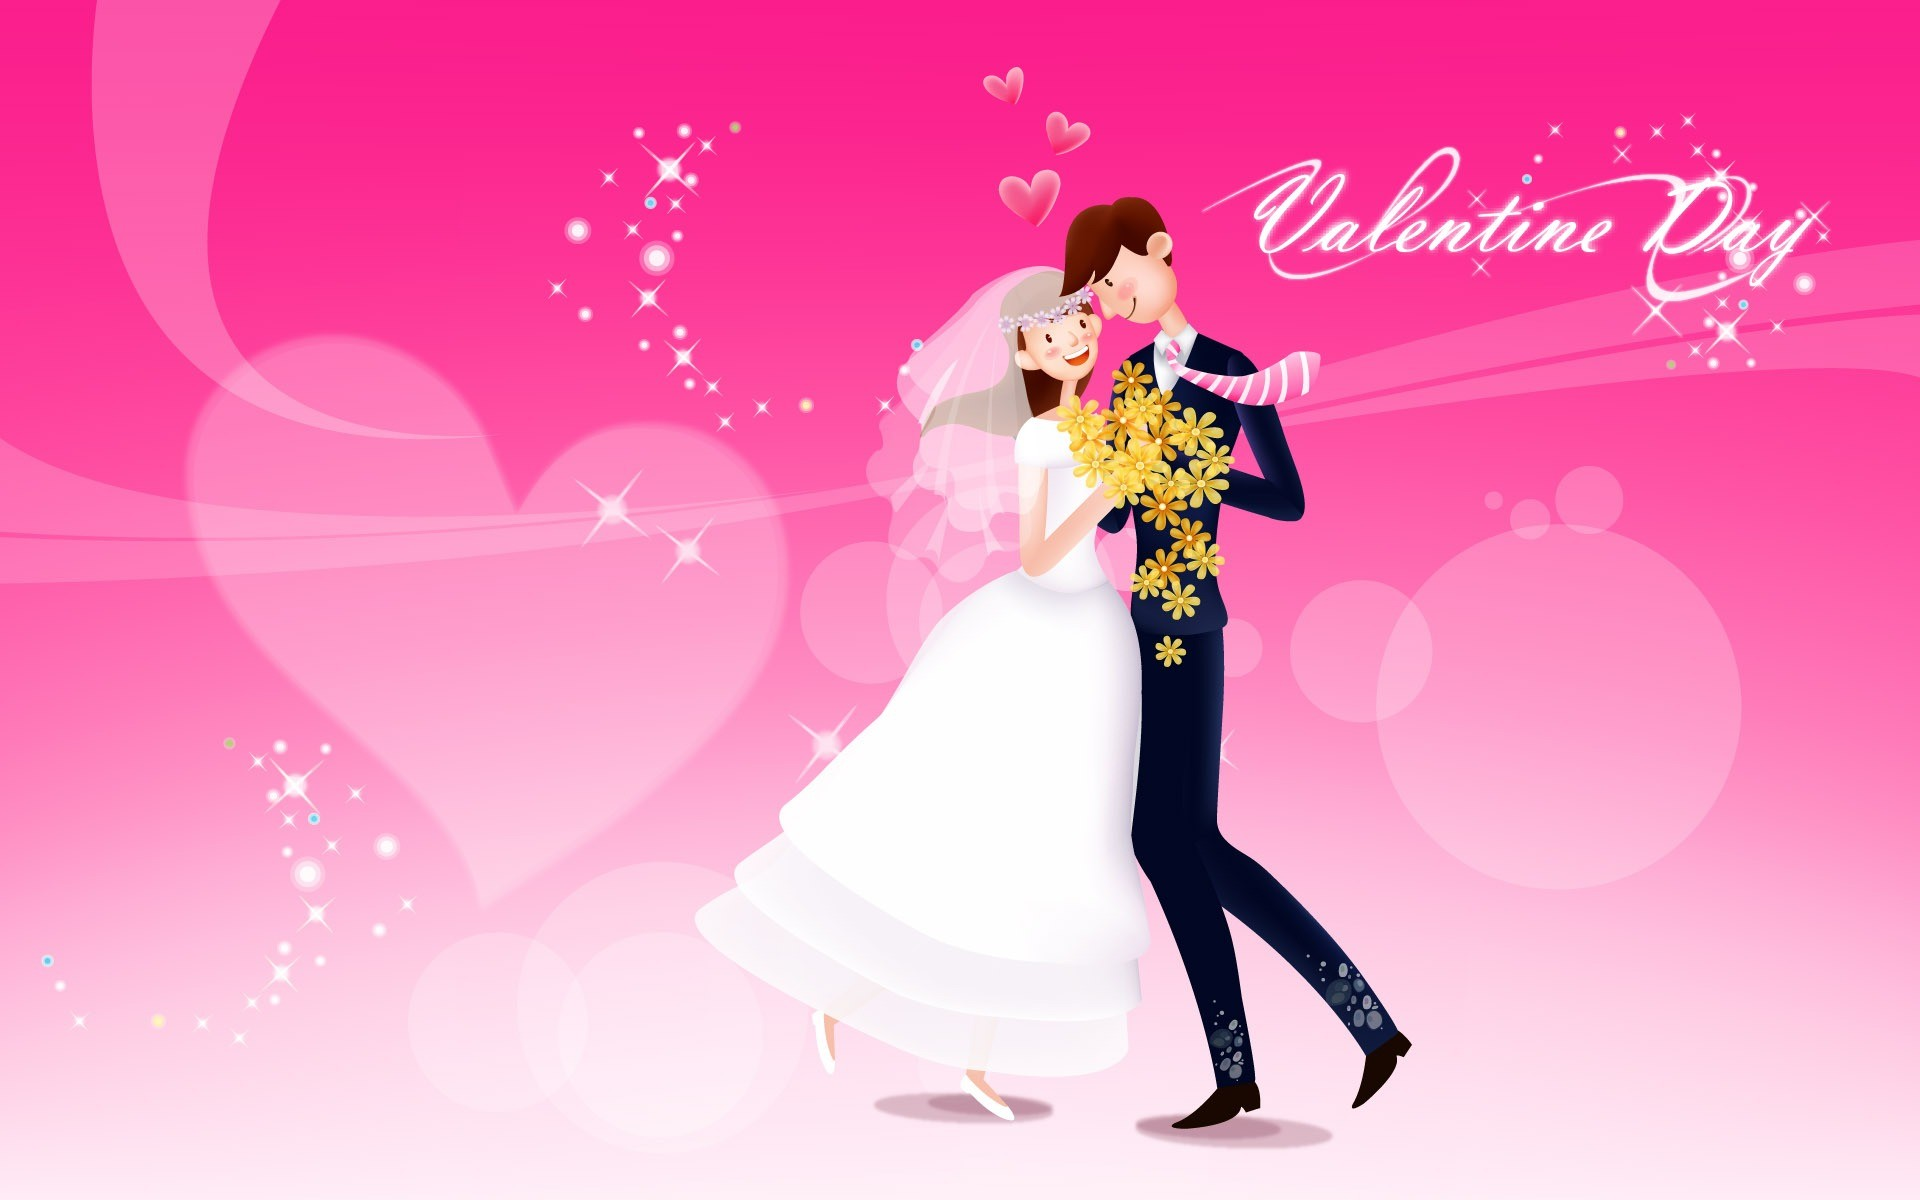 1920x1200 Valentine Day Love Dance WallPaper HD - http://imashon.com/love